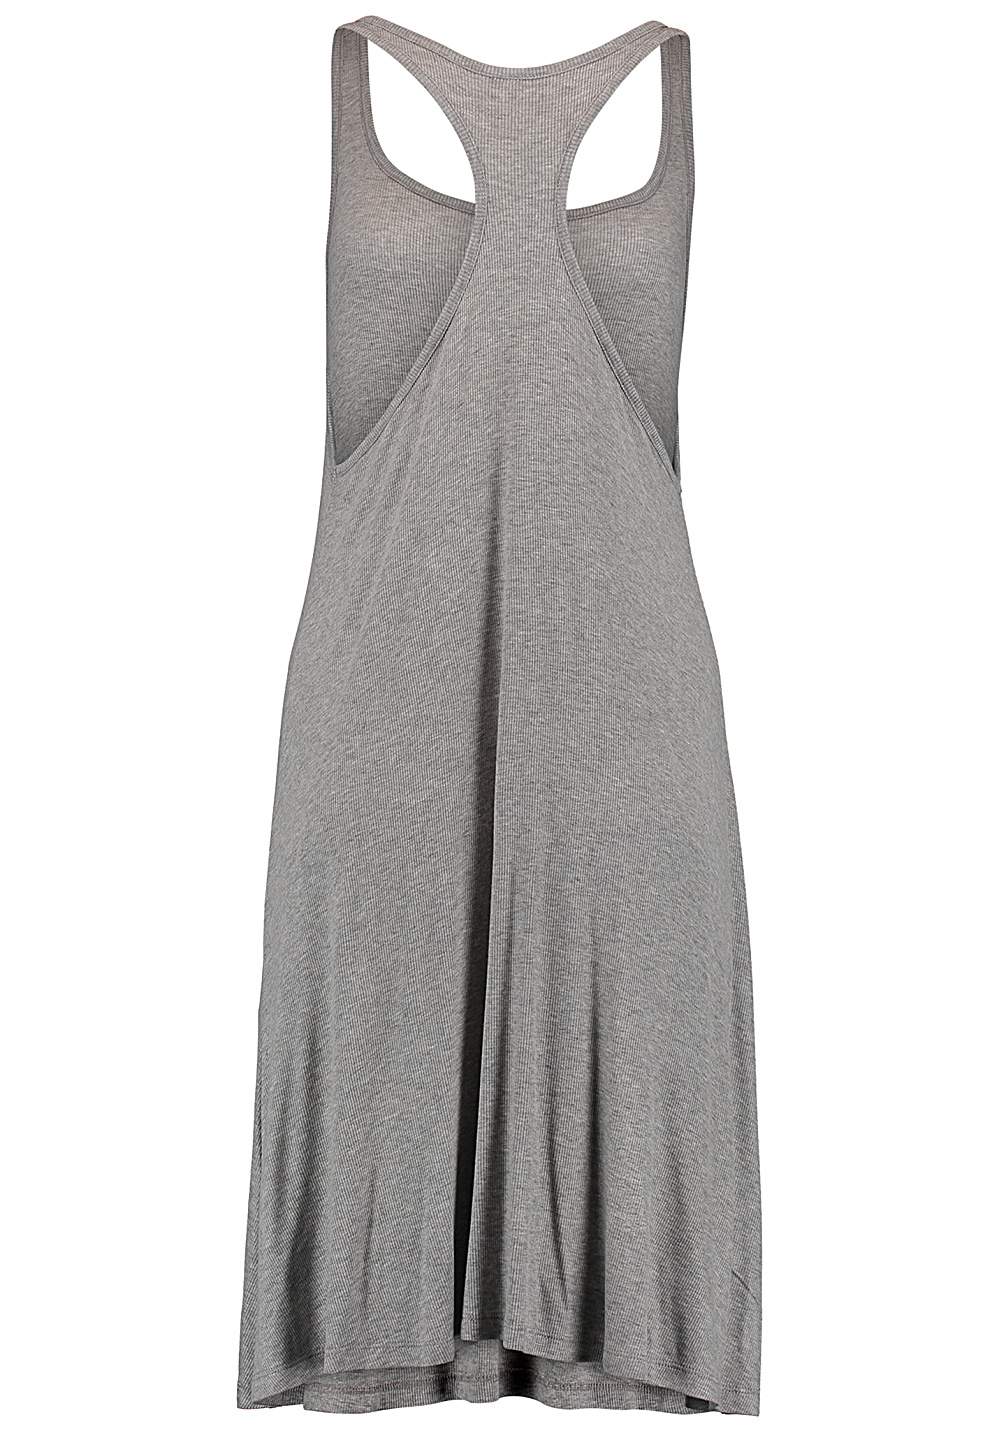 4c39a429f40 ... O'Neill Racerback Jersey Rib - Dress for Women - Grey. Back to  Overview. 1; 2. Previous